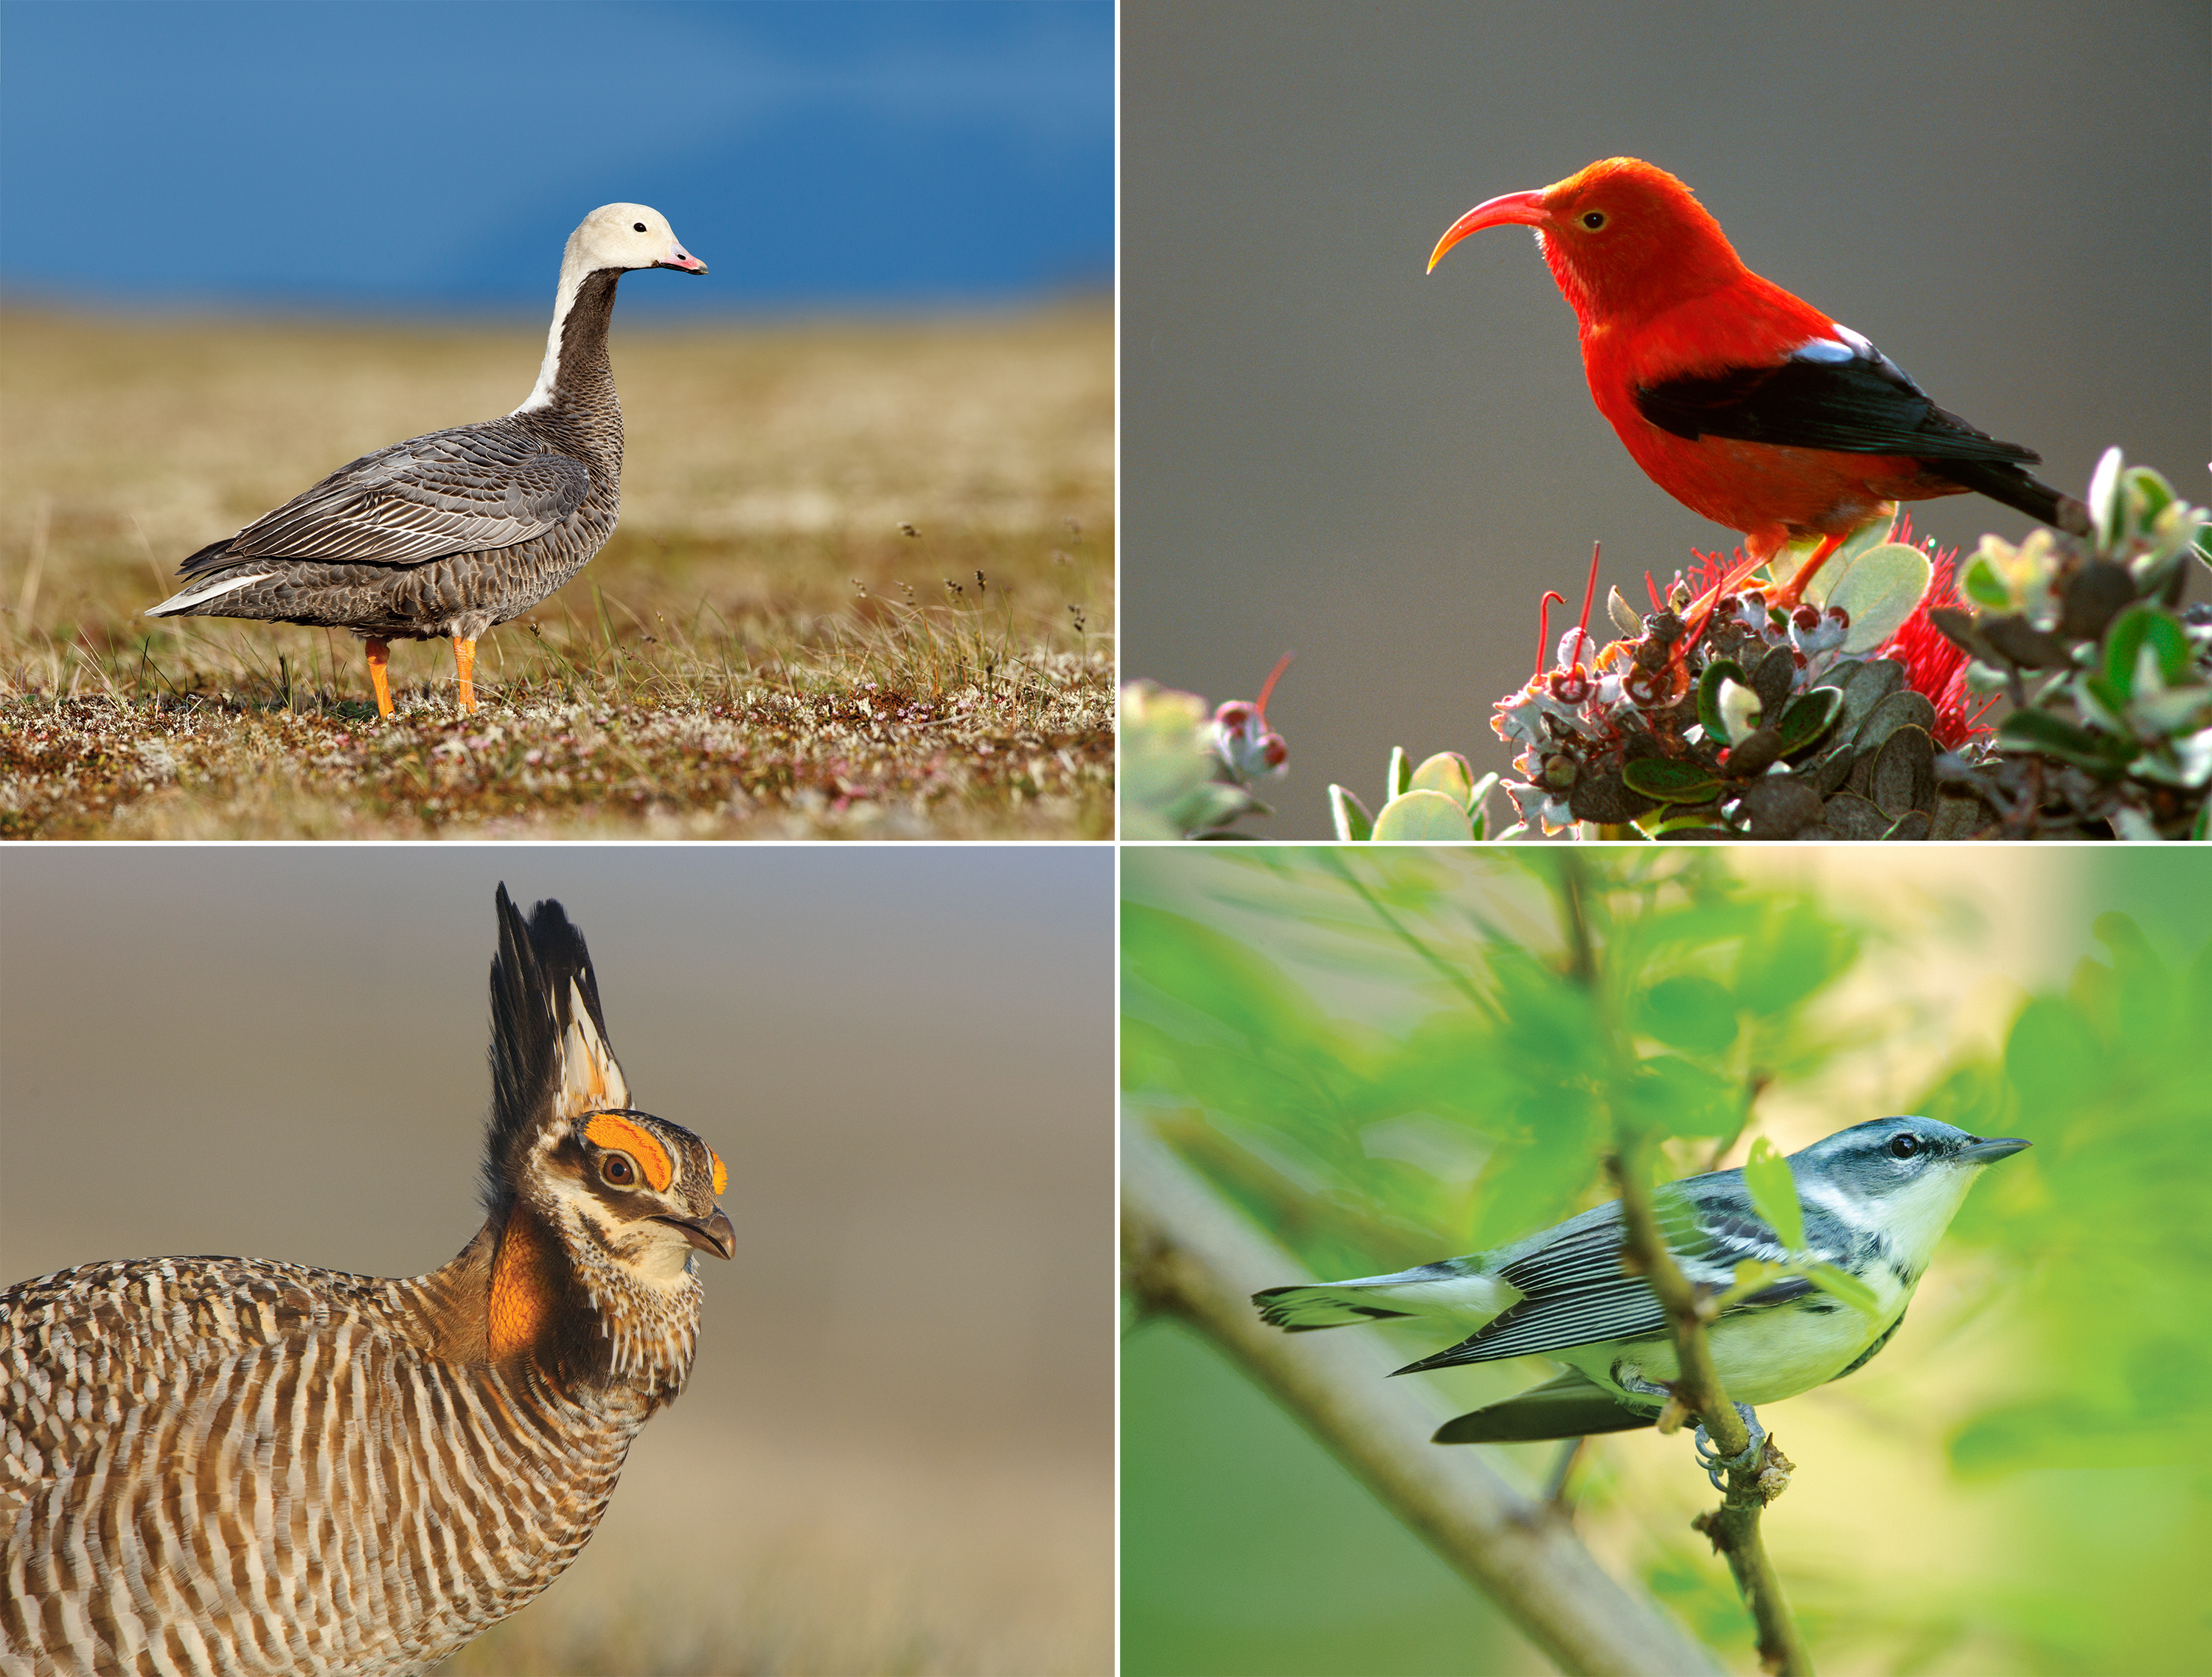 U.S. Gets Middling Marks On 2014 'State Of Birds' Report Card